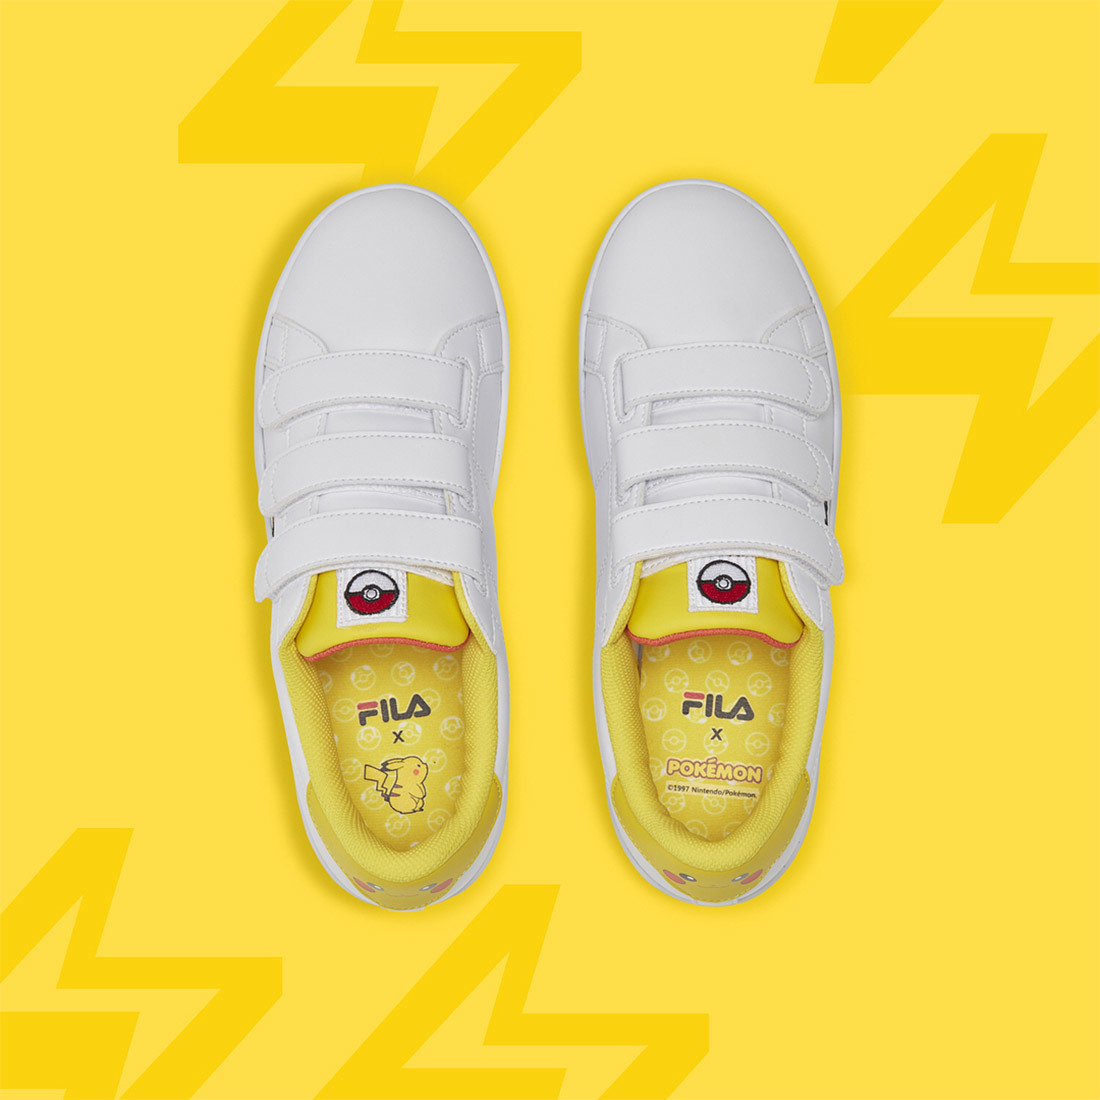 f1602da7faf7 Unfortunately the Pokémon x FILA Court Deluxe Low-Top collection is  currently only available at FILA locations in South Korea.